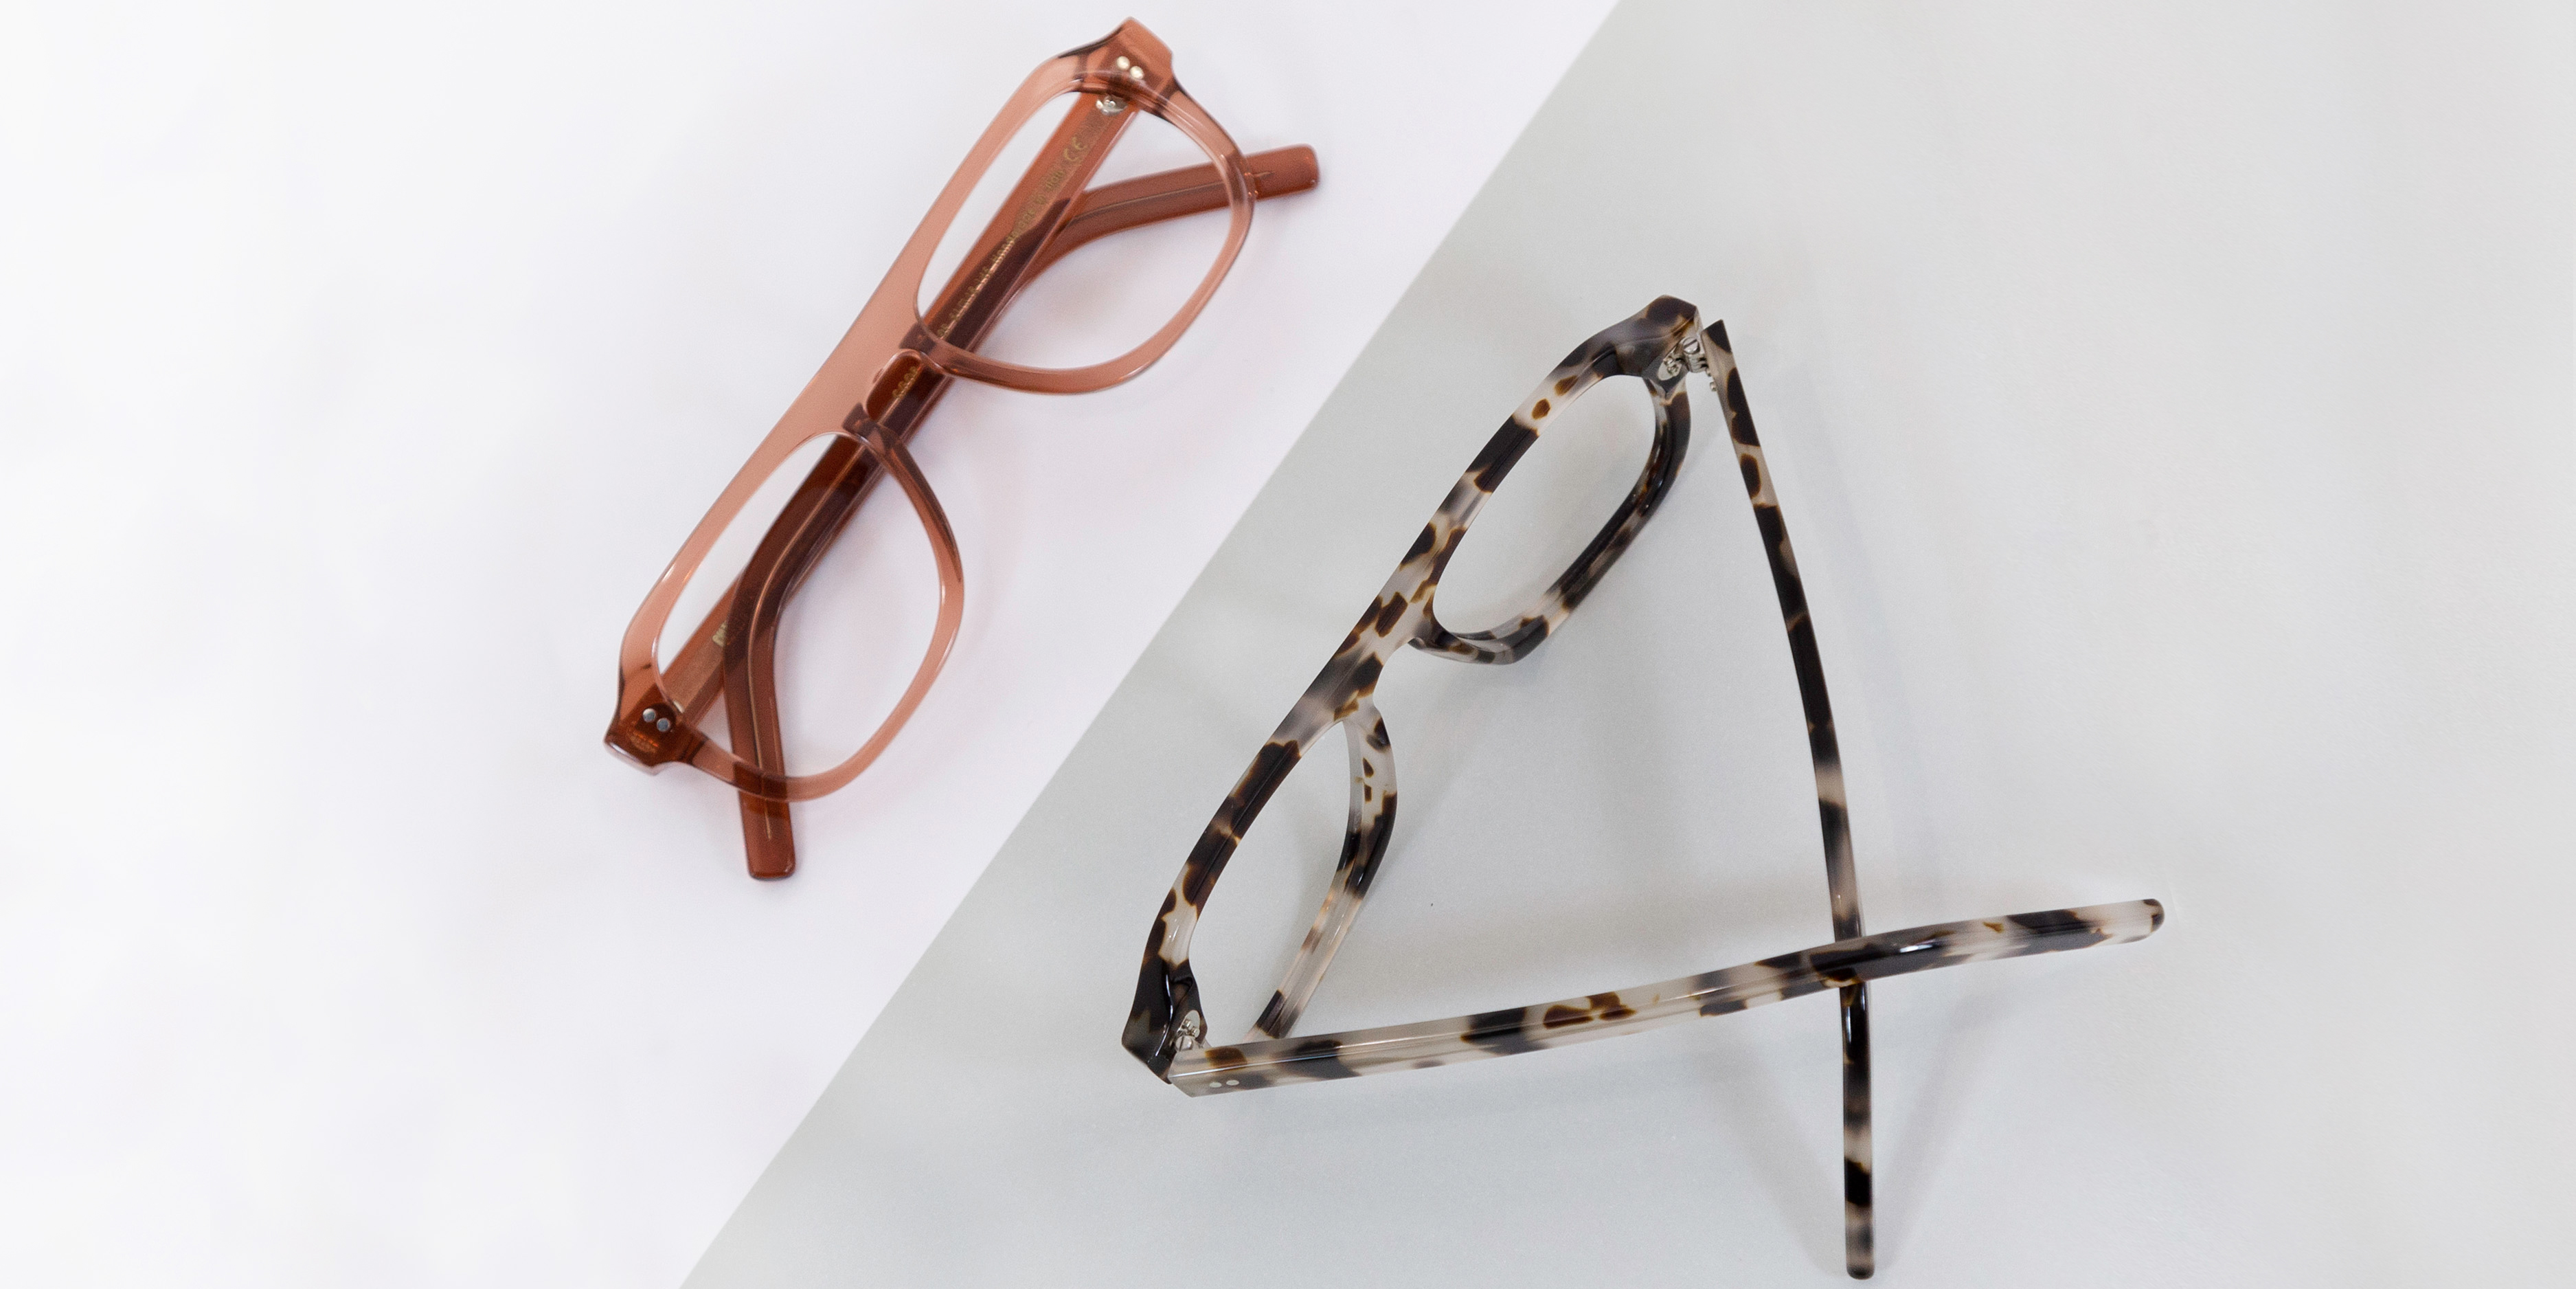 The 0822 Optical in new colours for Summer '21